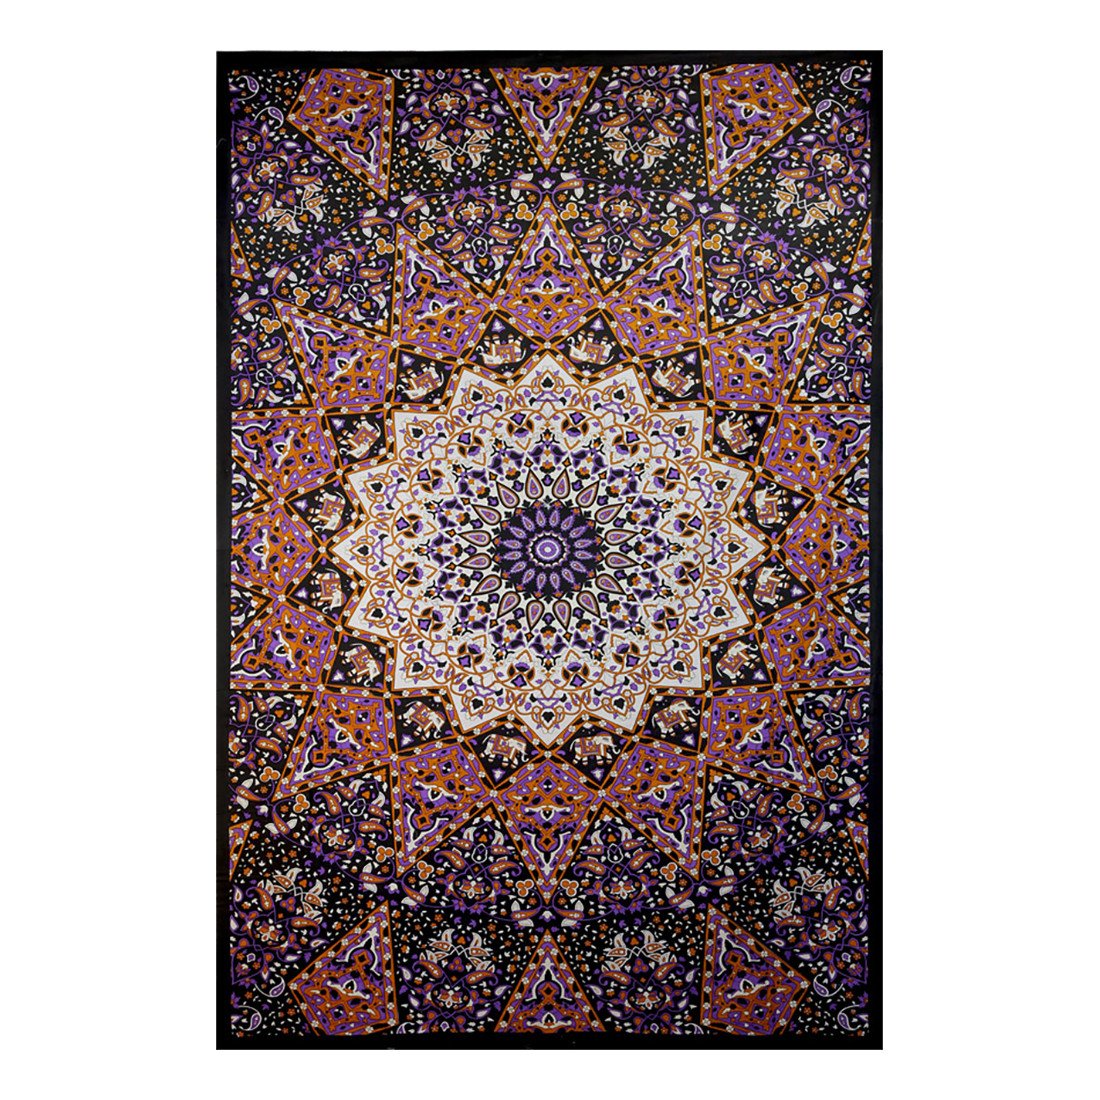 India Star Glow in the Dark  3D Glow in the Dark Tapestry